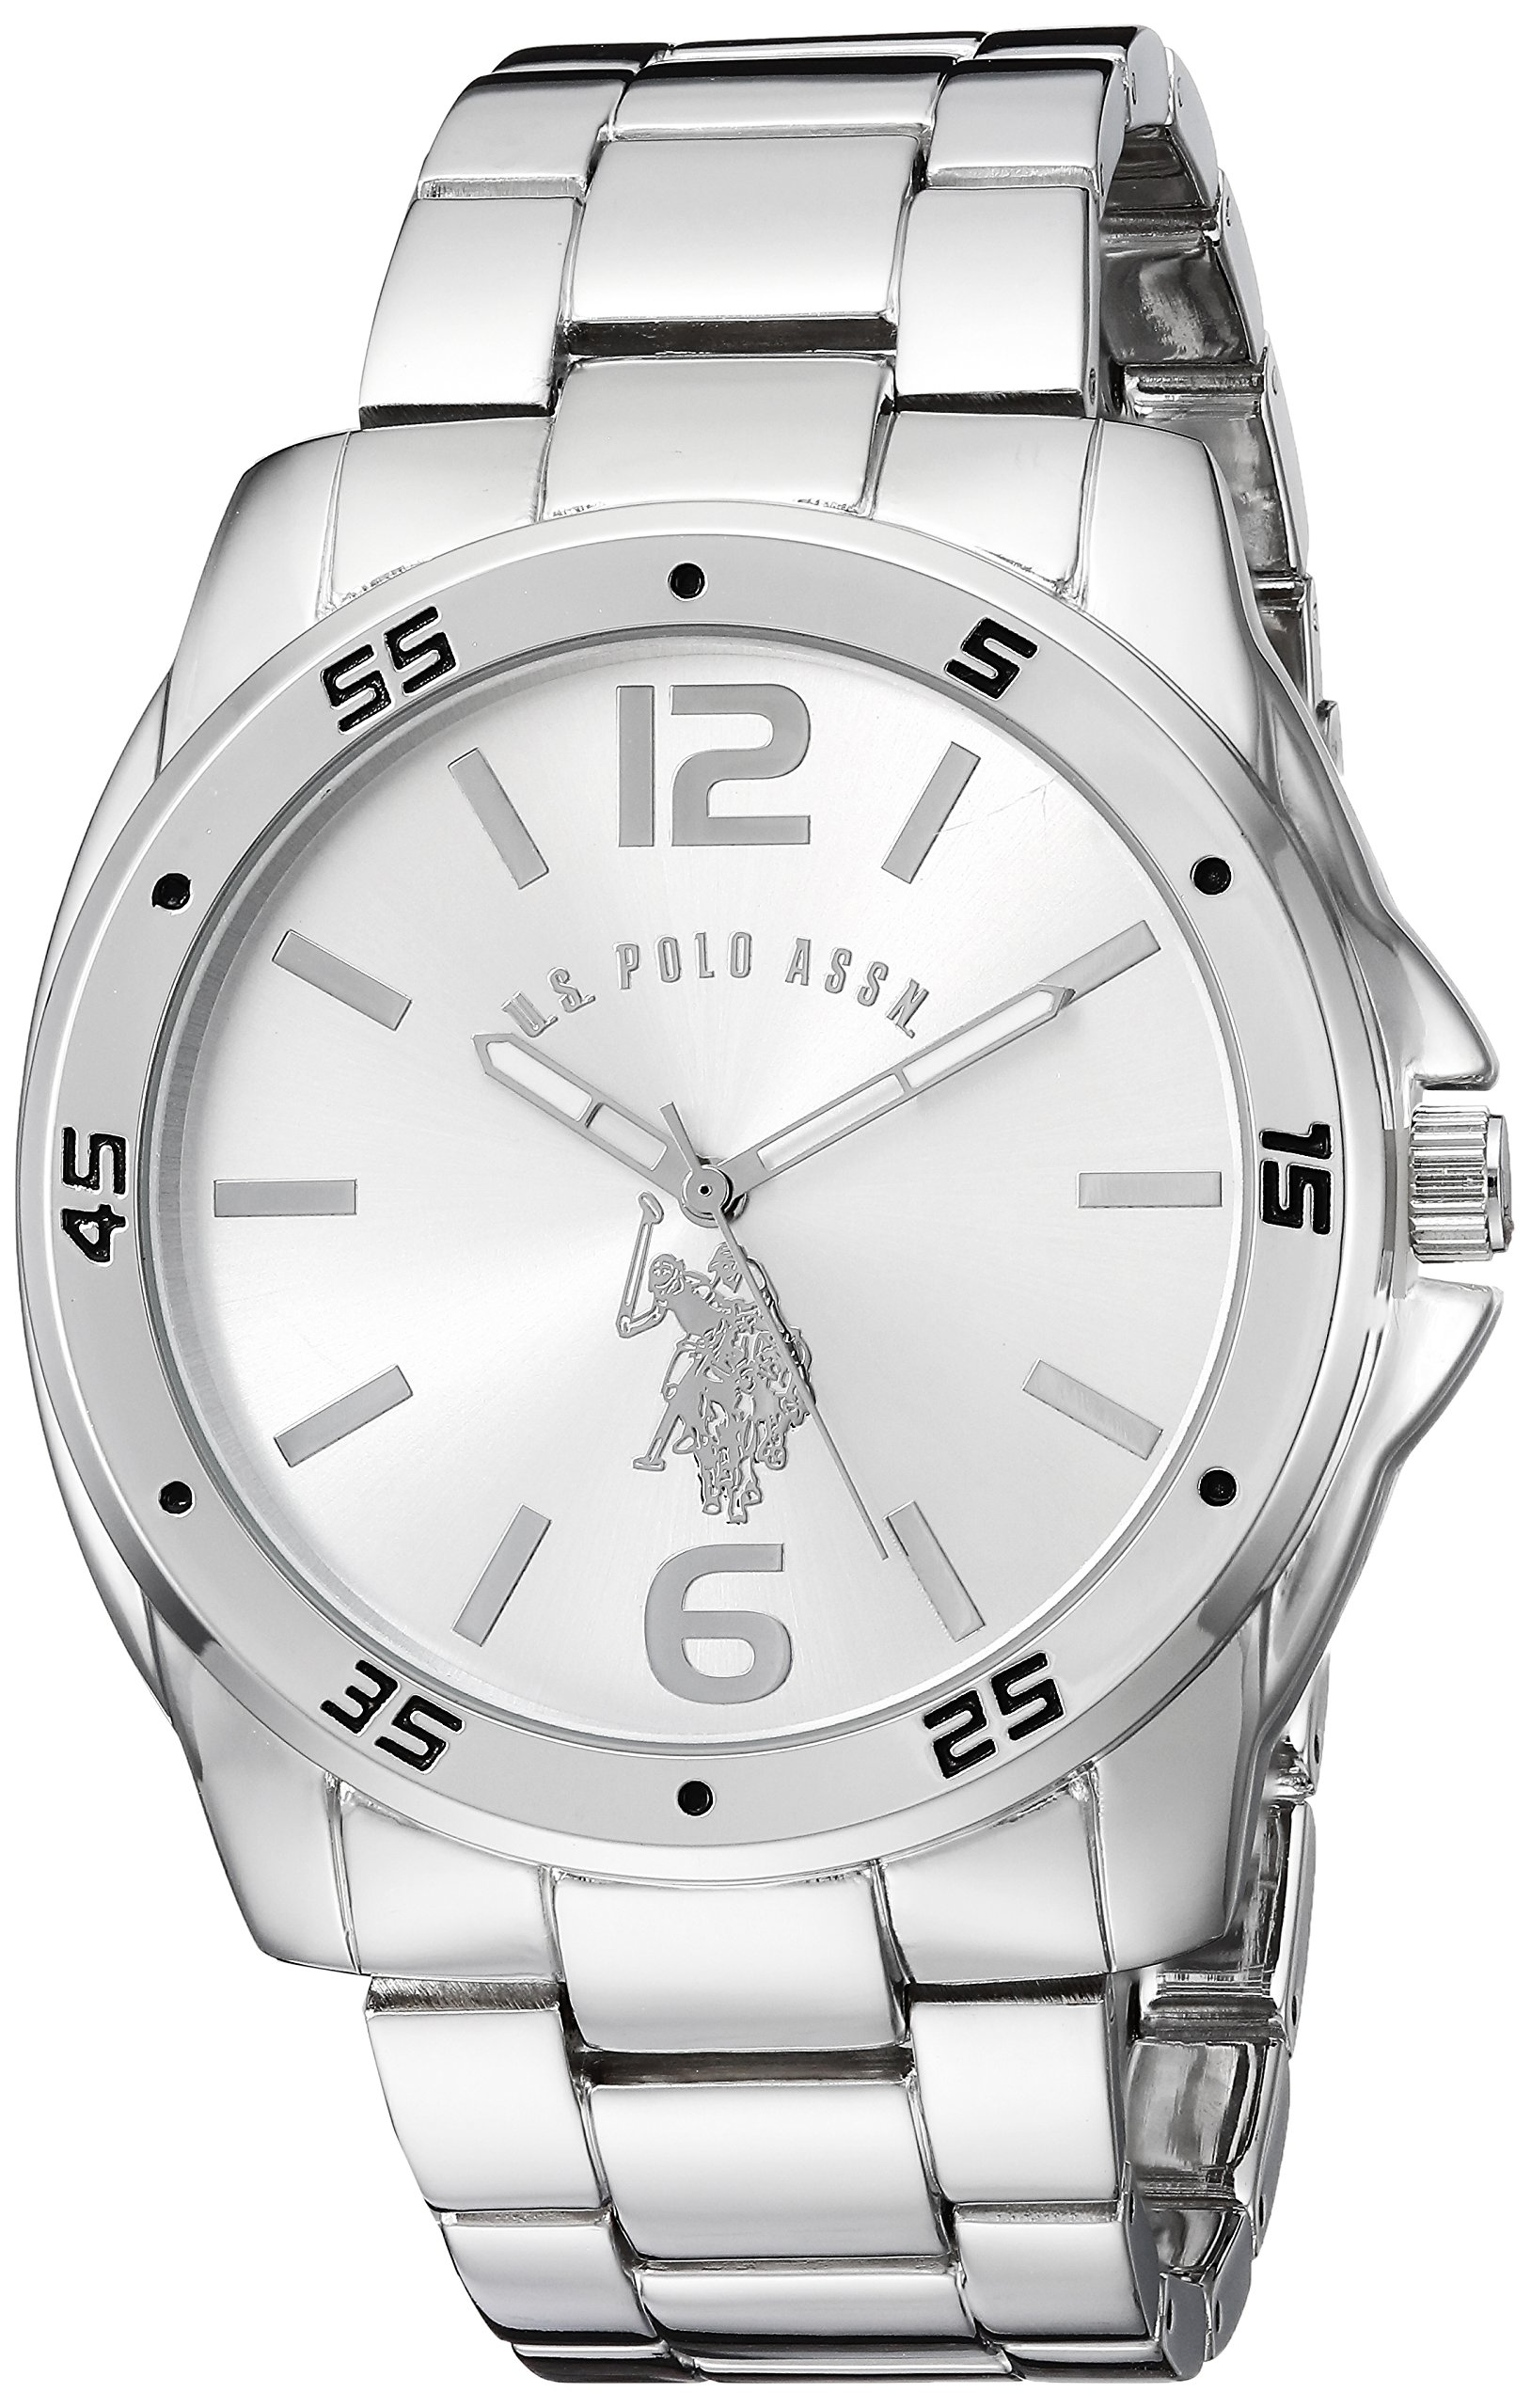 7bfb229df150 U.S. Polo Assn. Classic Men's USC80223 Silver-Tone Watch with Link Bracelet